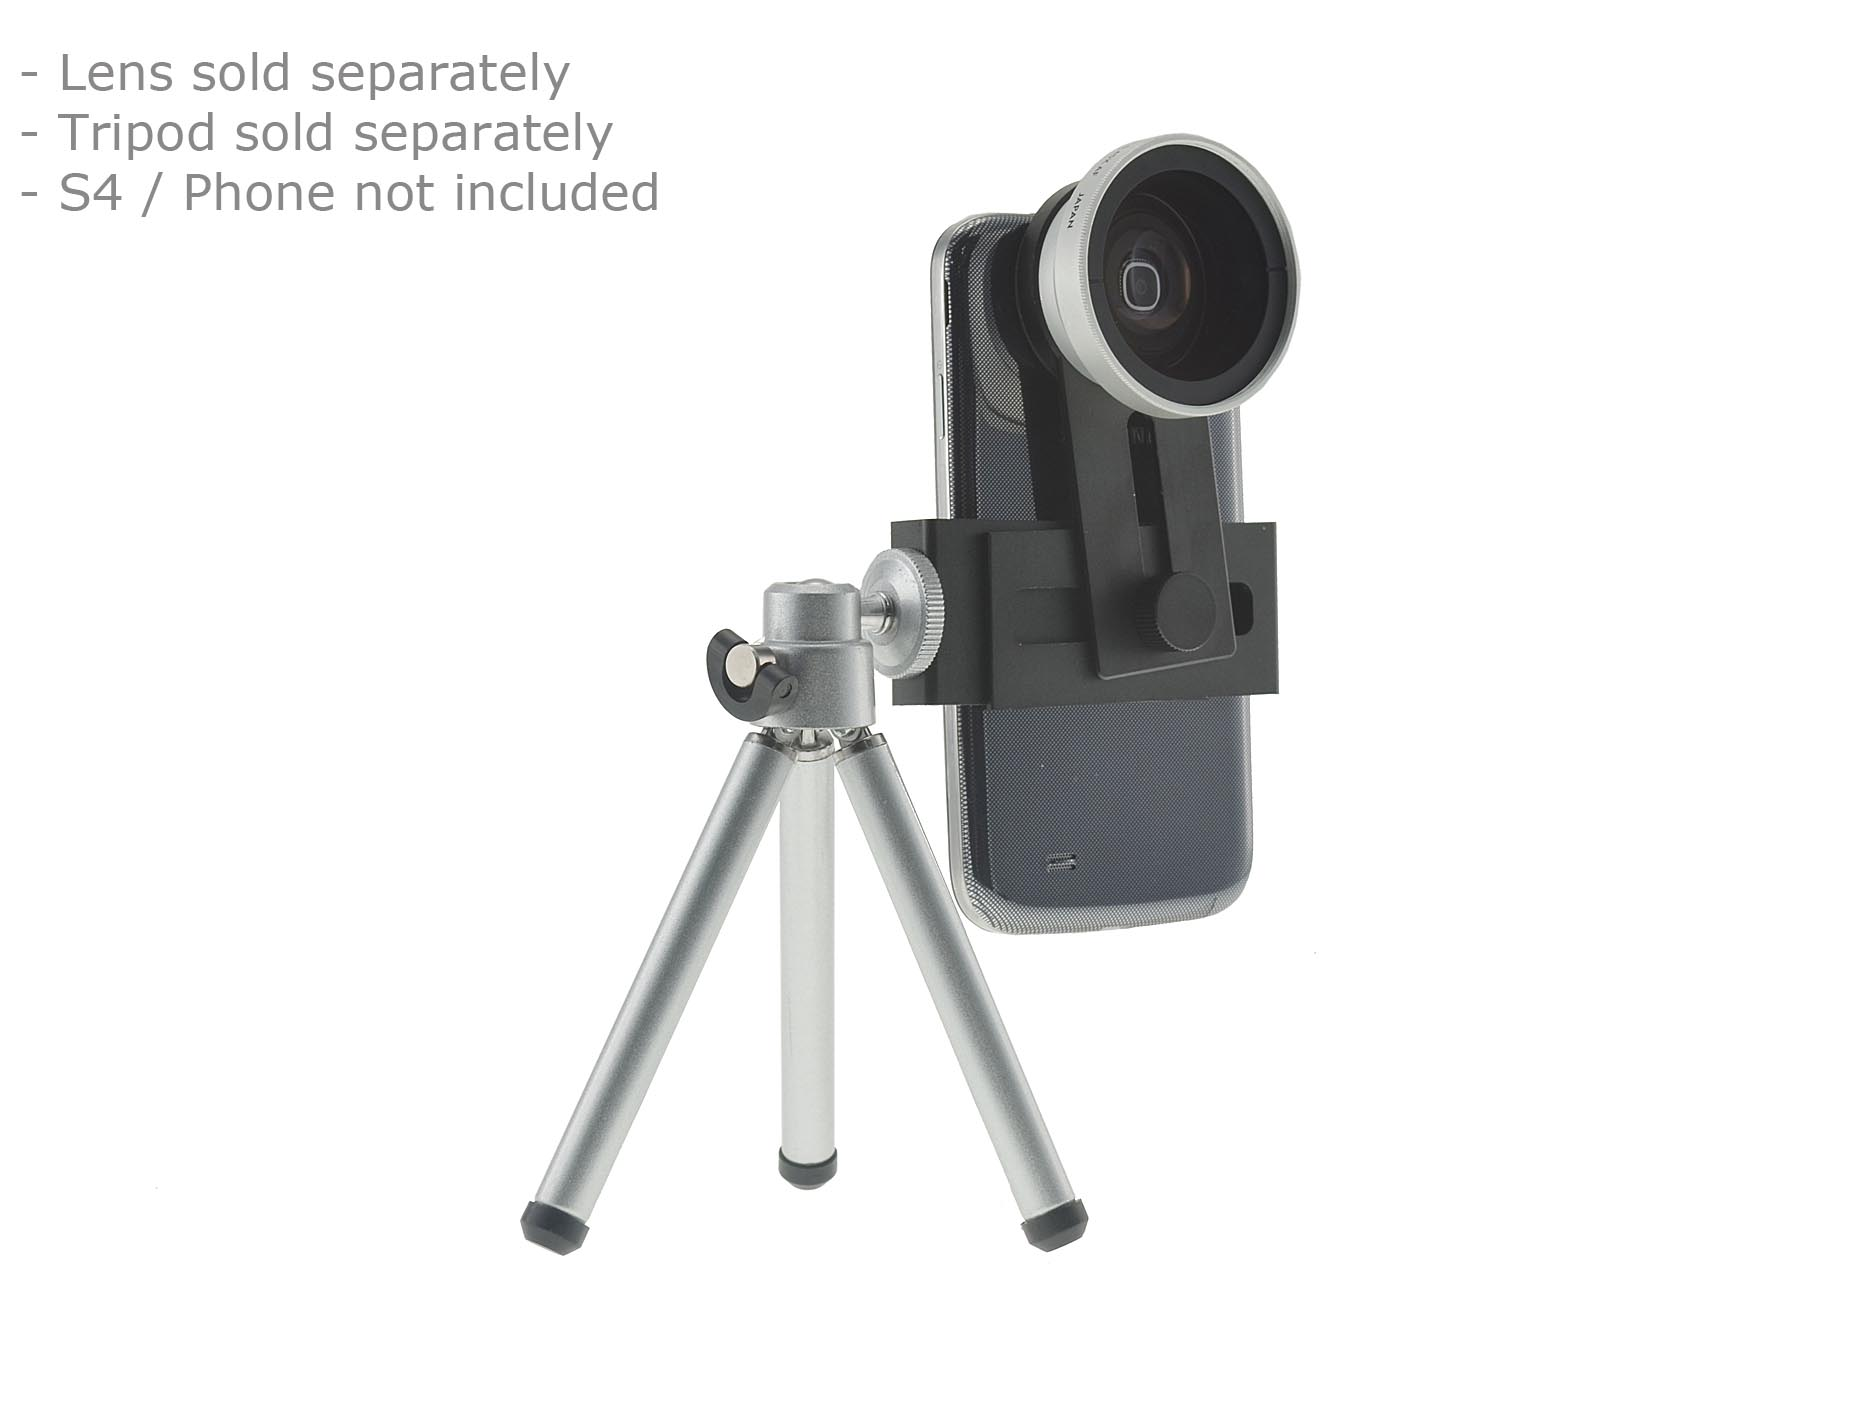 Conversion Adapter Kit for using 37mm SLR Lenses on Galaxy S10 / Galaxy Note 9 / iPhone Xs Max, XR